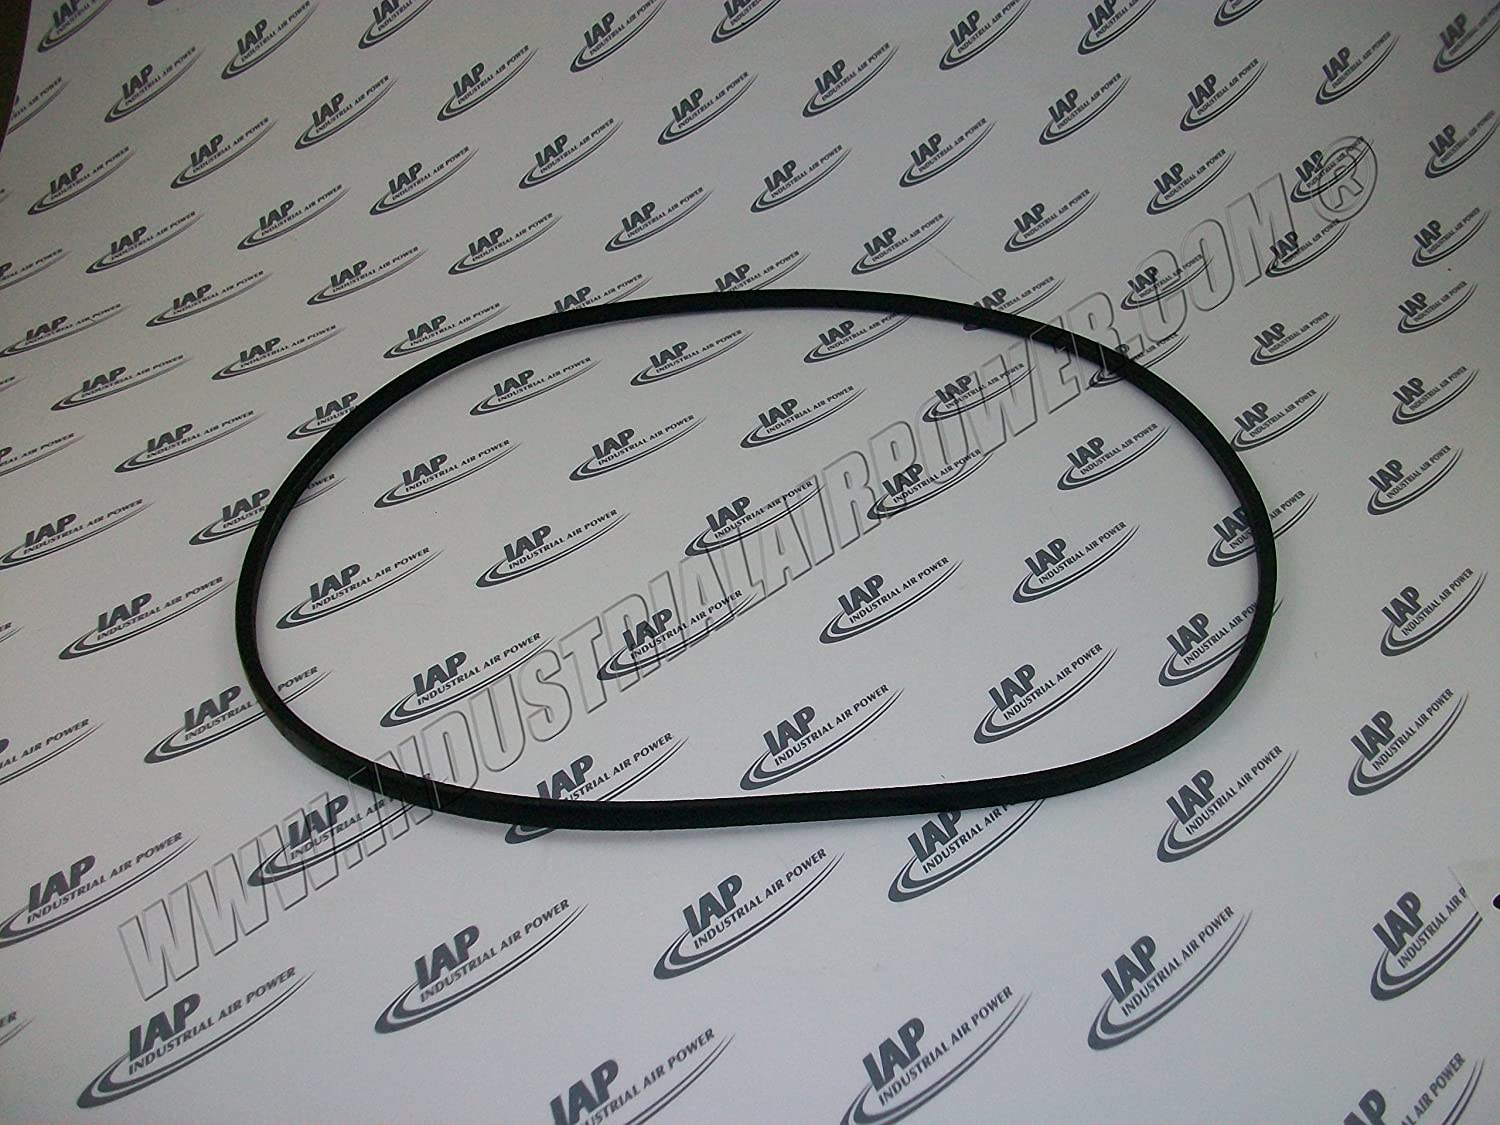 89306302 Belt Designed for use with Ingersoll Rand compressors